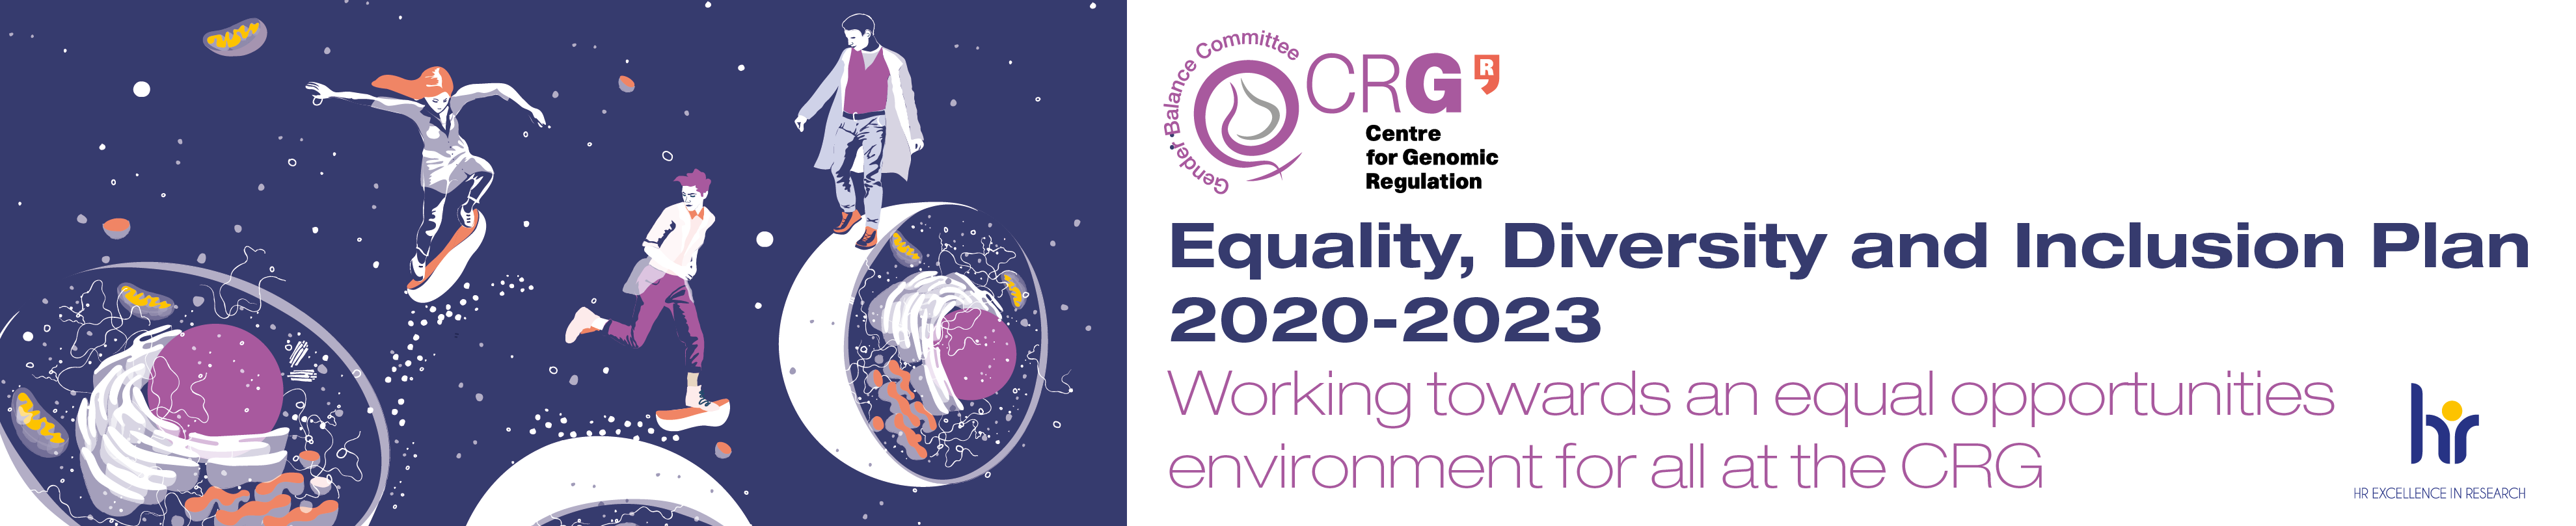 Equality, Diversity & Inclusion Plan (2020-2023)